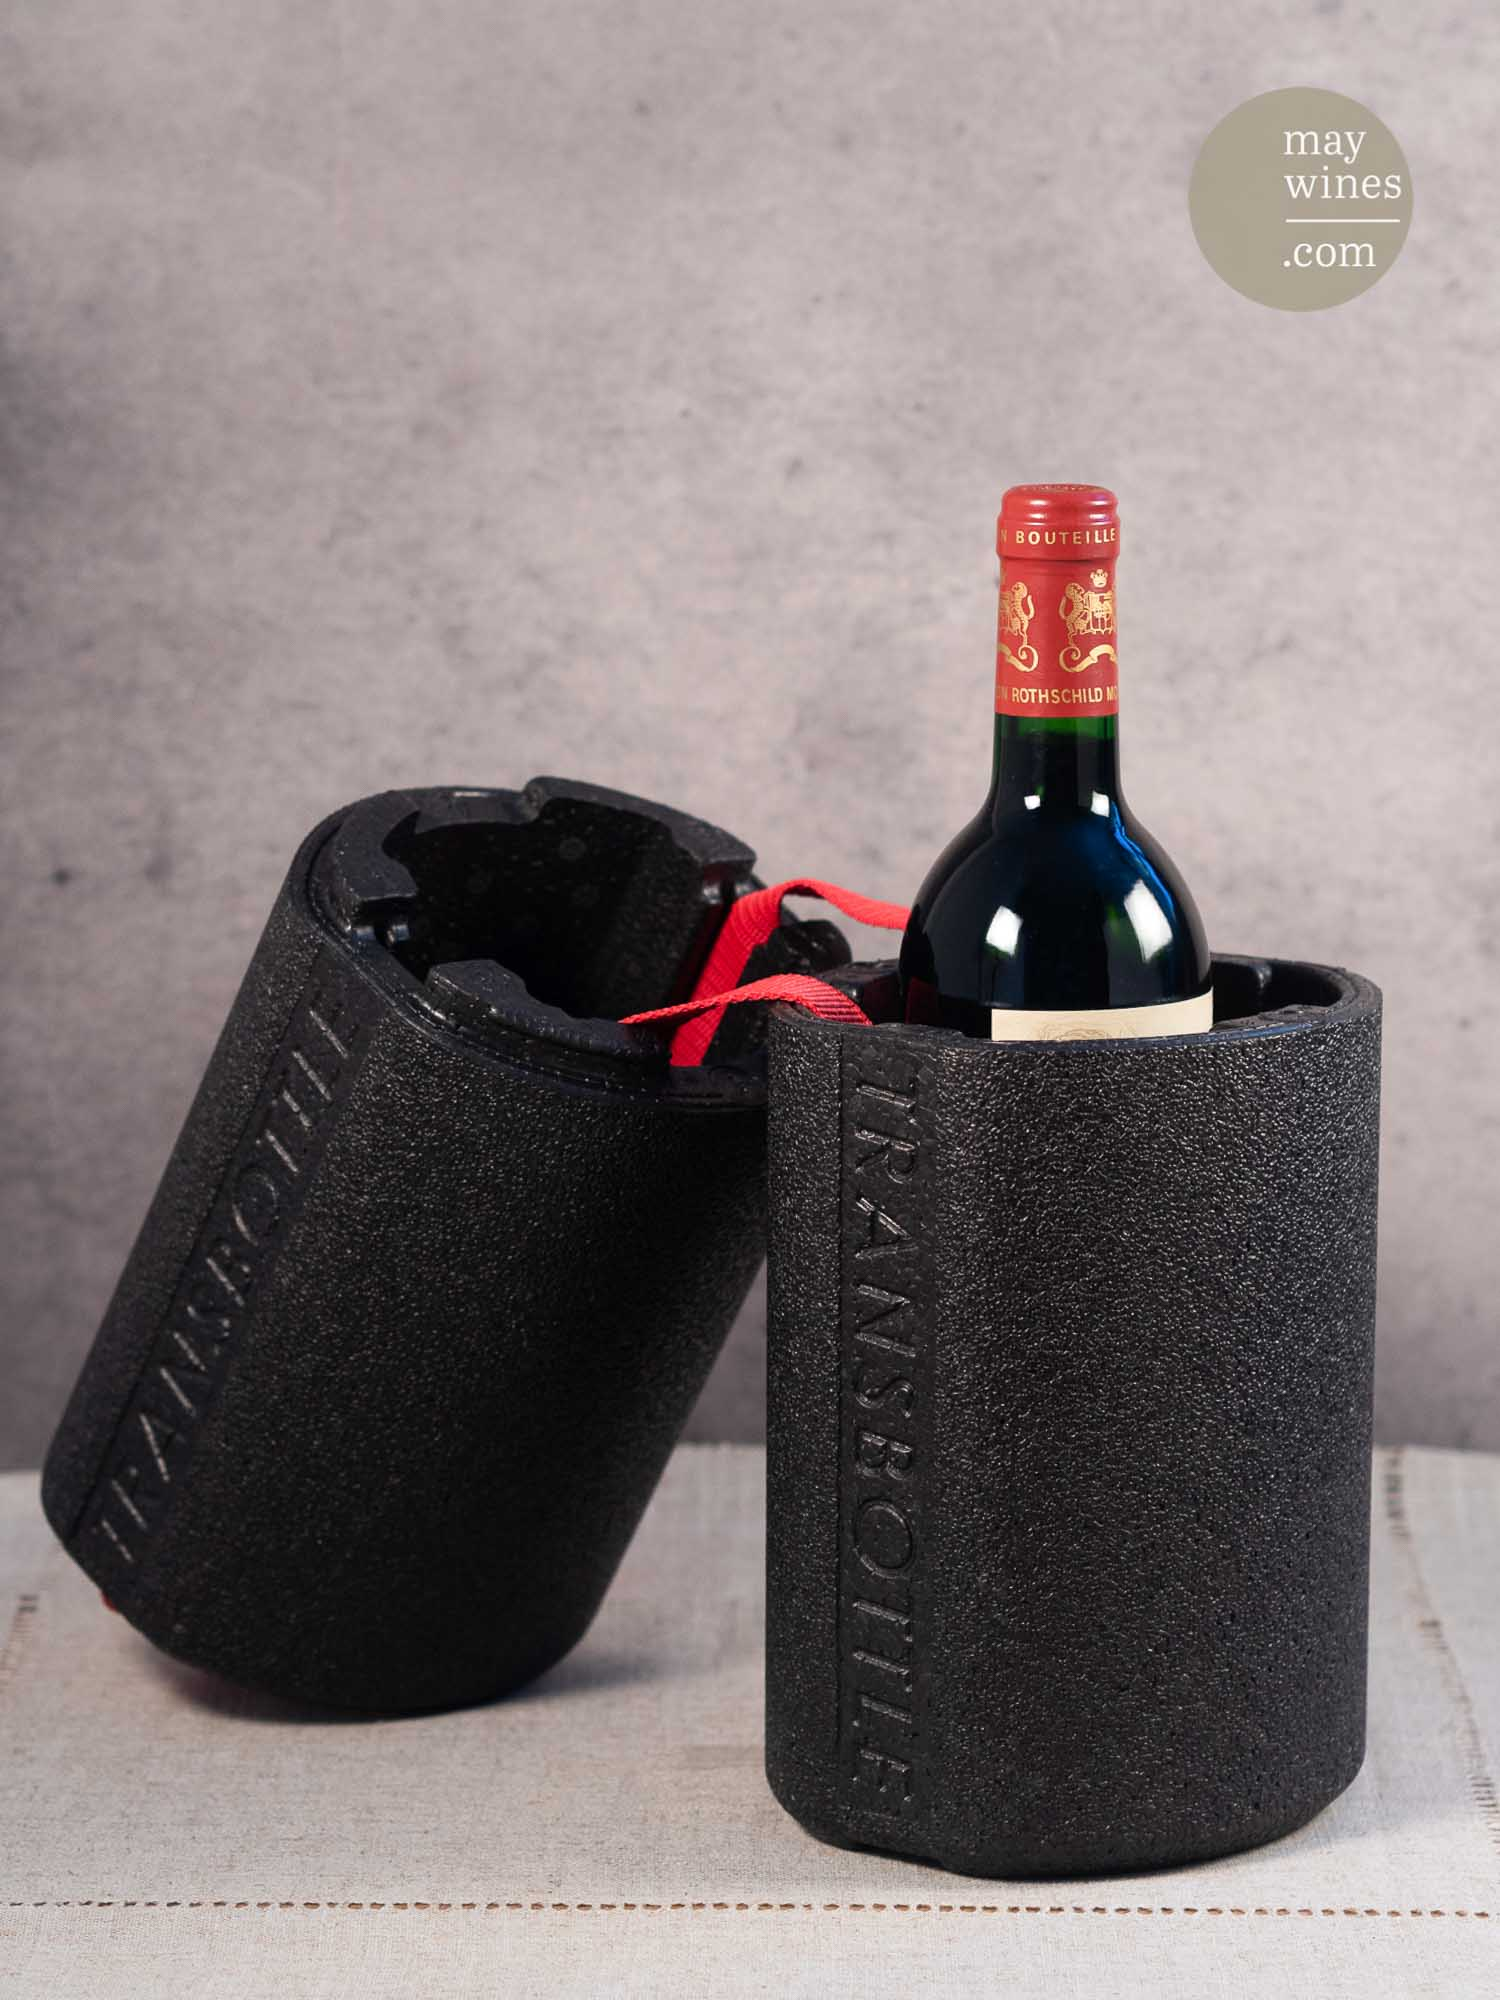 transbottle-one-may-wines